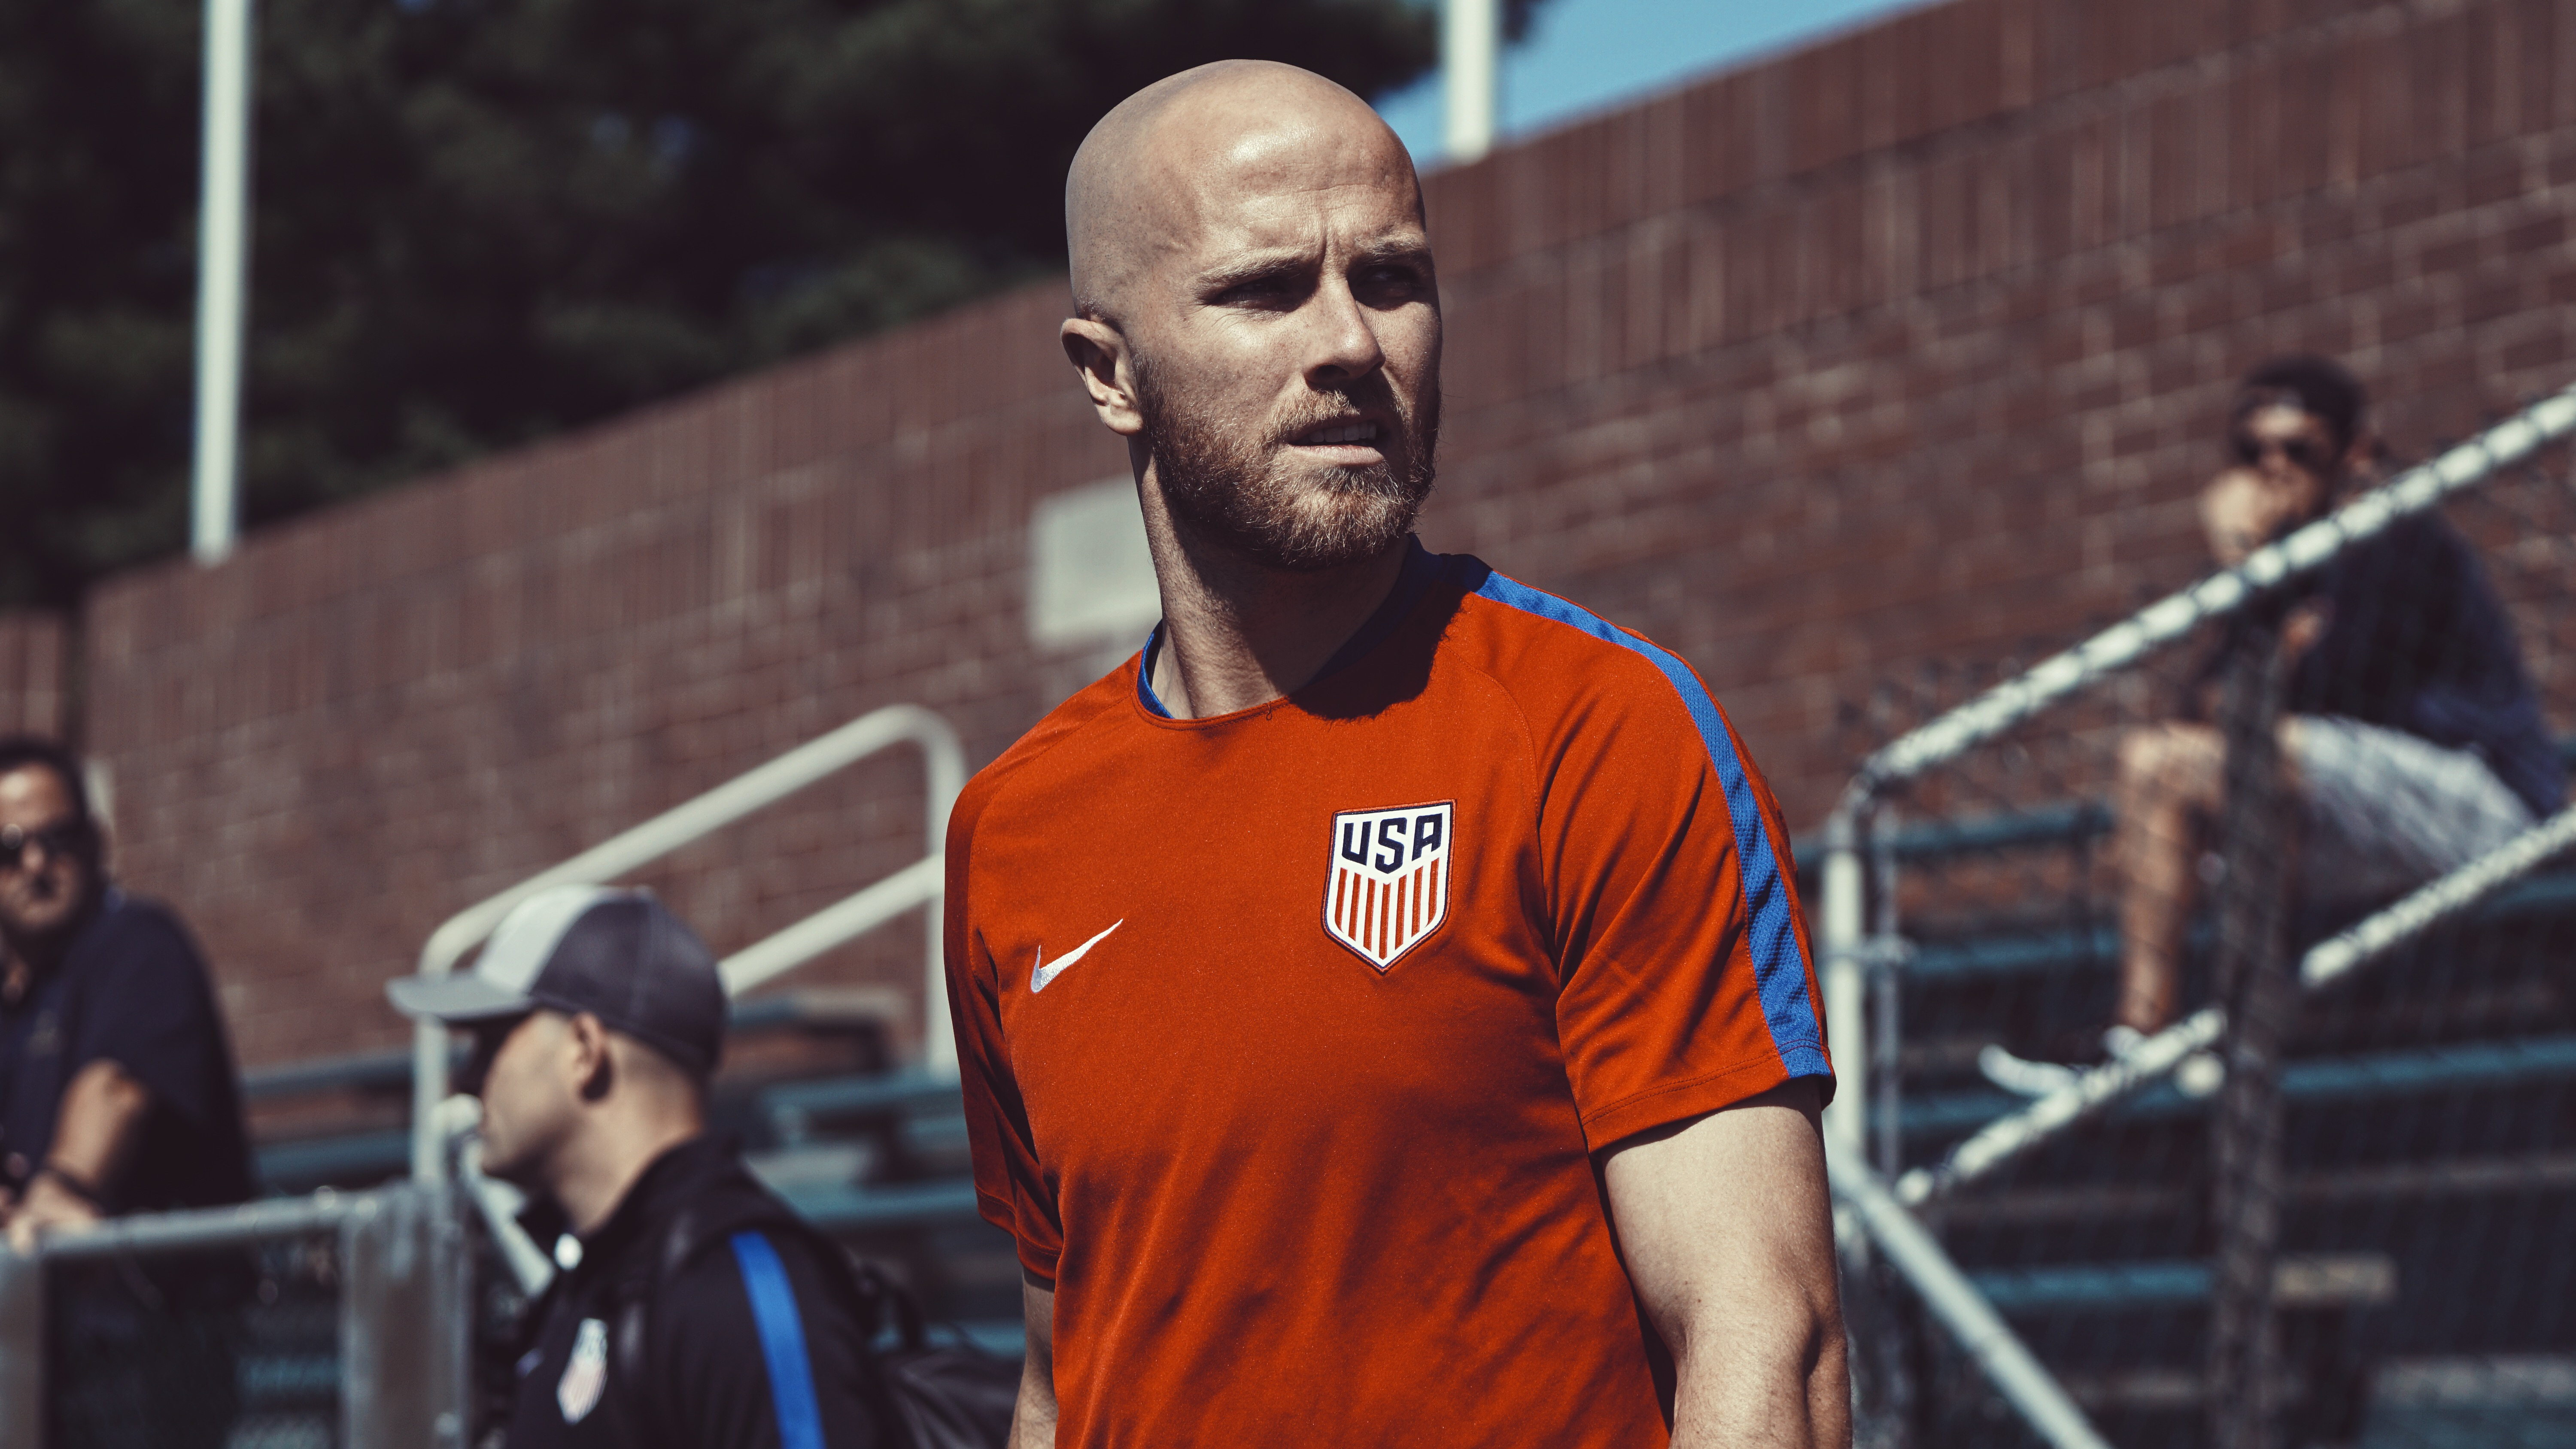 United States captain Michael Bradley at practice ahead of the USMNT's Copa América match against Paraguay.